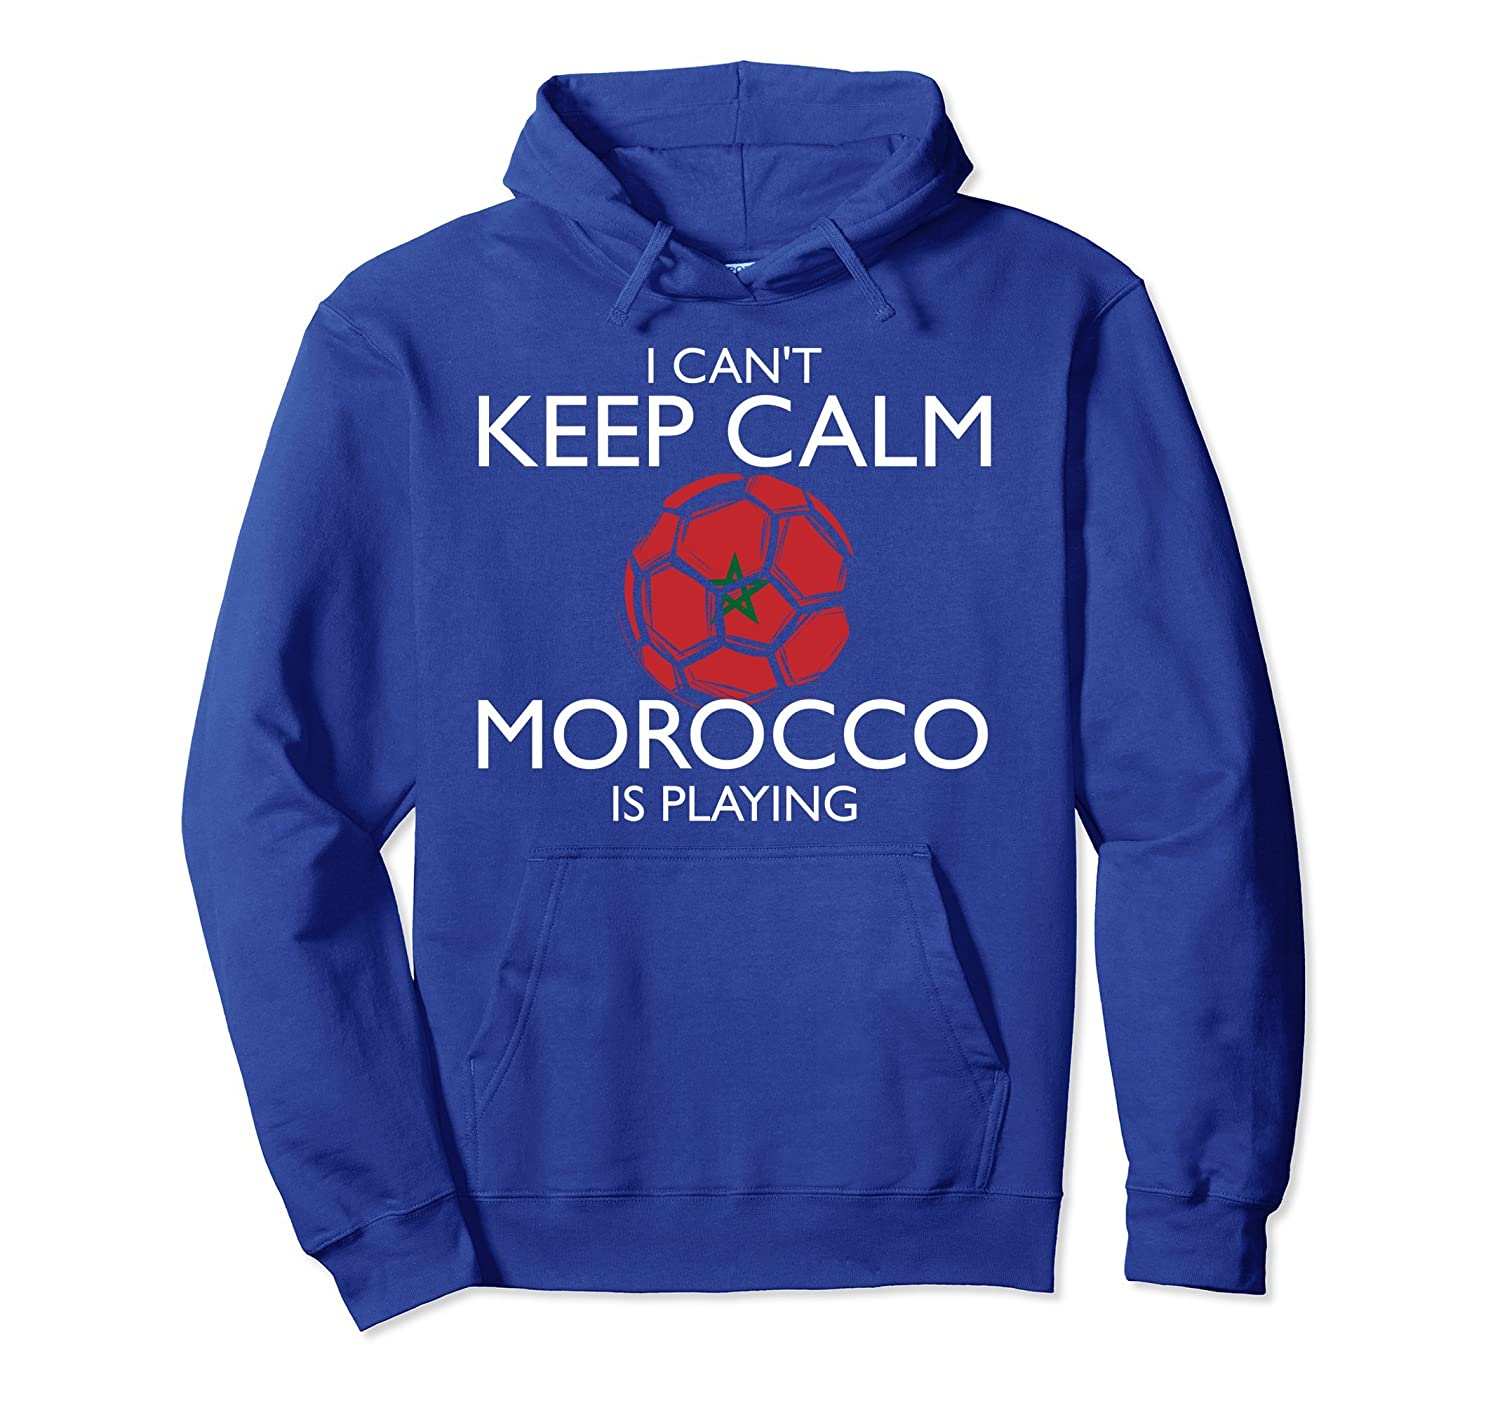 7b0d742f895 Morocco Football Jersey 2018 Moroccan Soccer Hoodie-alottee gift ...